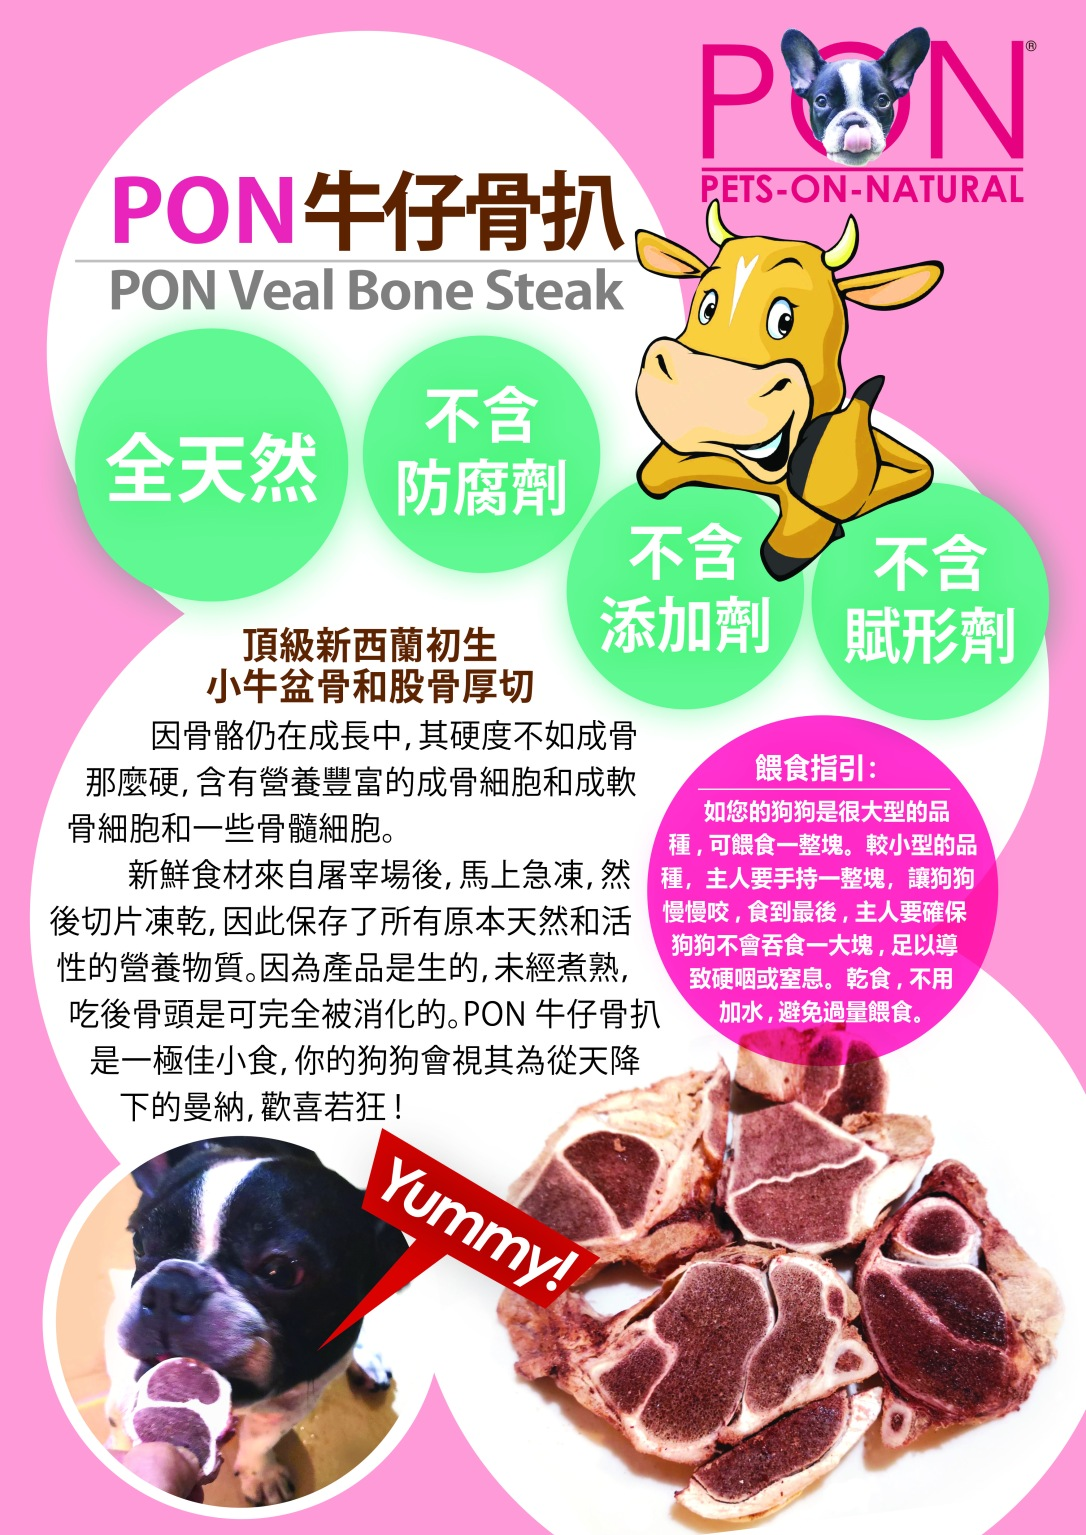 PON Veal Bone Steak A3